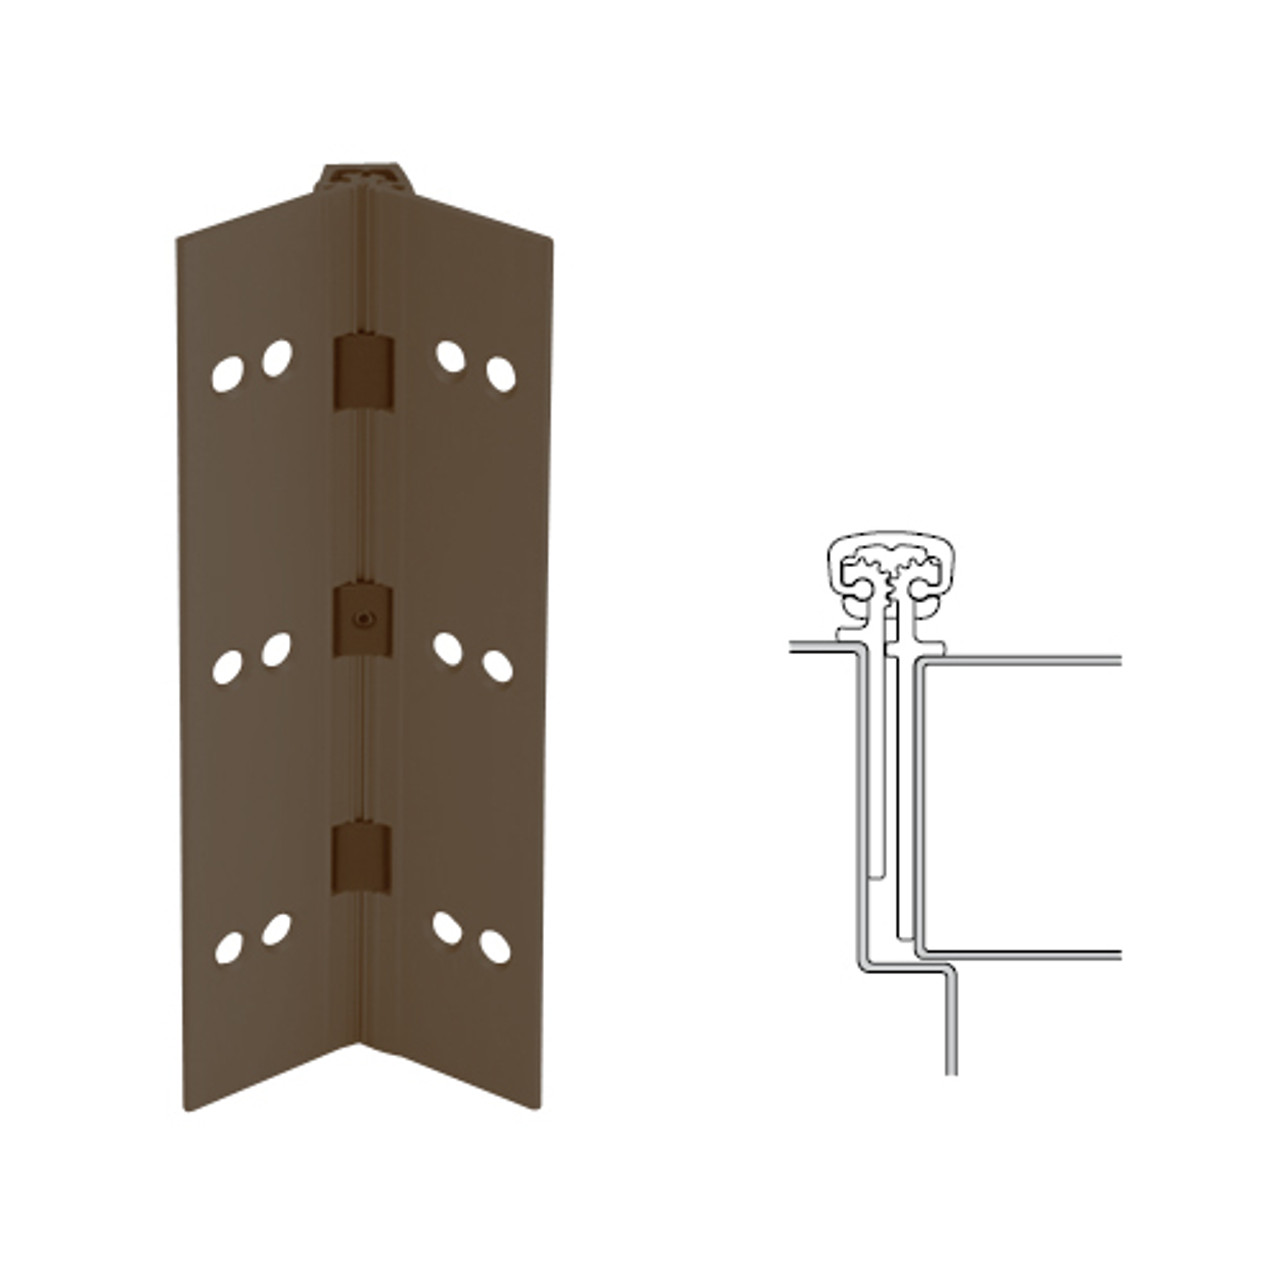 026XY-313AN-95-SECWDWD IVES Full Mortise Continuous Geared Hinges with Security Screws - Hex Pin Drive in Dark Bronze Anodized